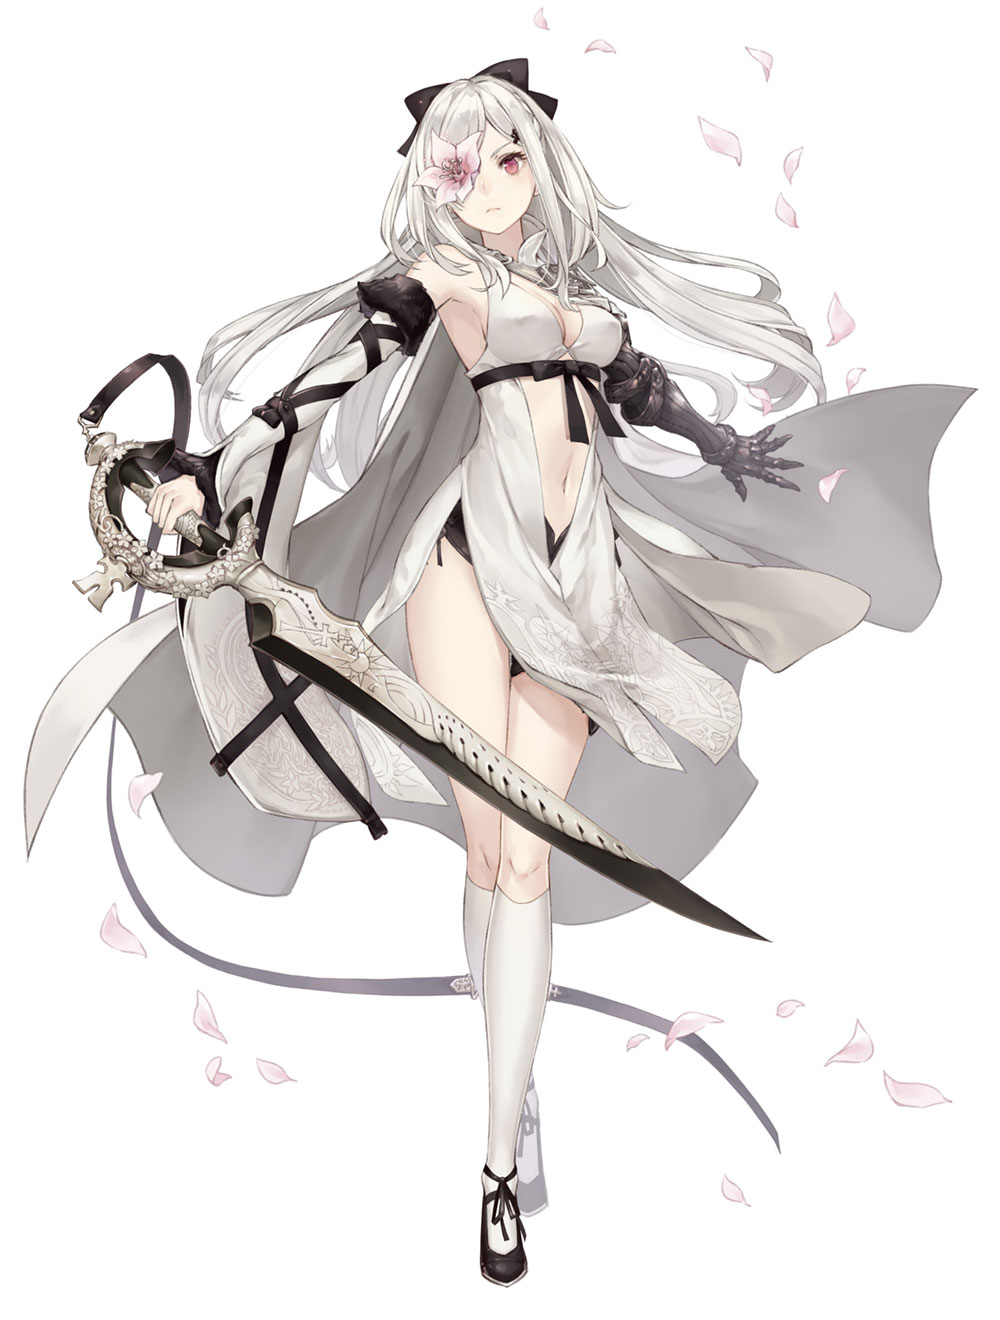 Zero, Breaker Job Art SINoALICE Art Gallery in 2020